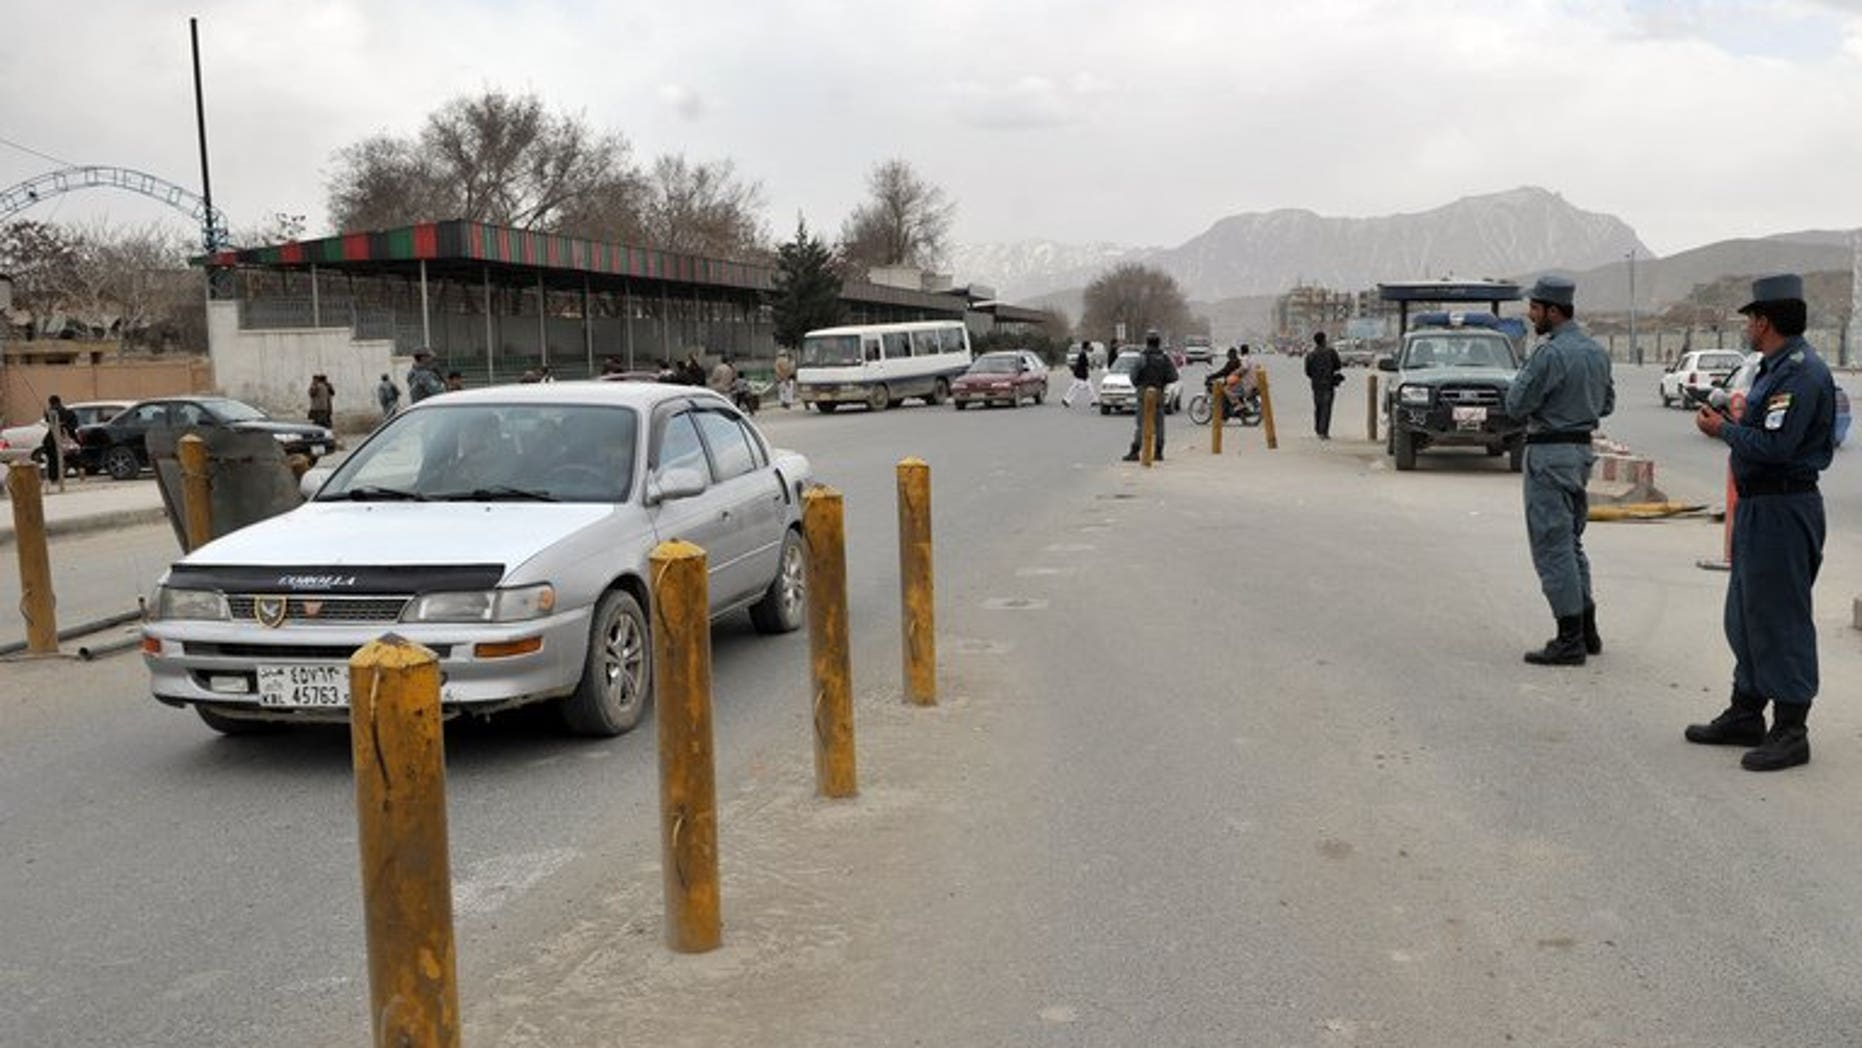 In this file photo, Afghan policemen are seen standing guard at a checkpoint in Kabul, on March 23, 2012. A suicide car bomb in Kabul struck a foreign logistics company supplying NATO forces, killing one person and wounding three or four others early on Tuesday, police said.